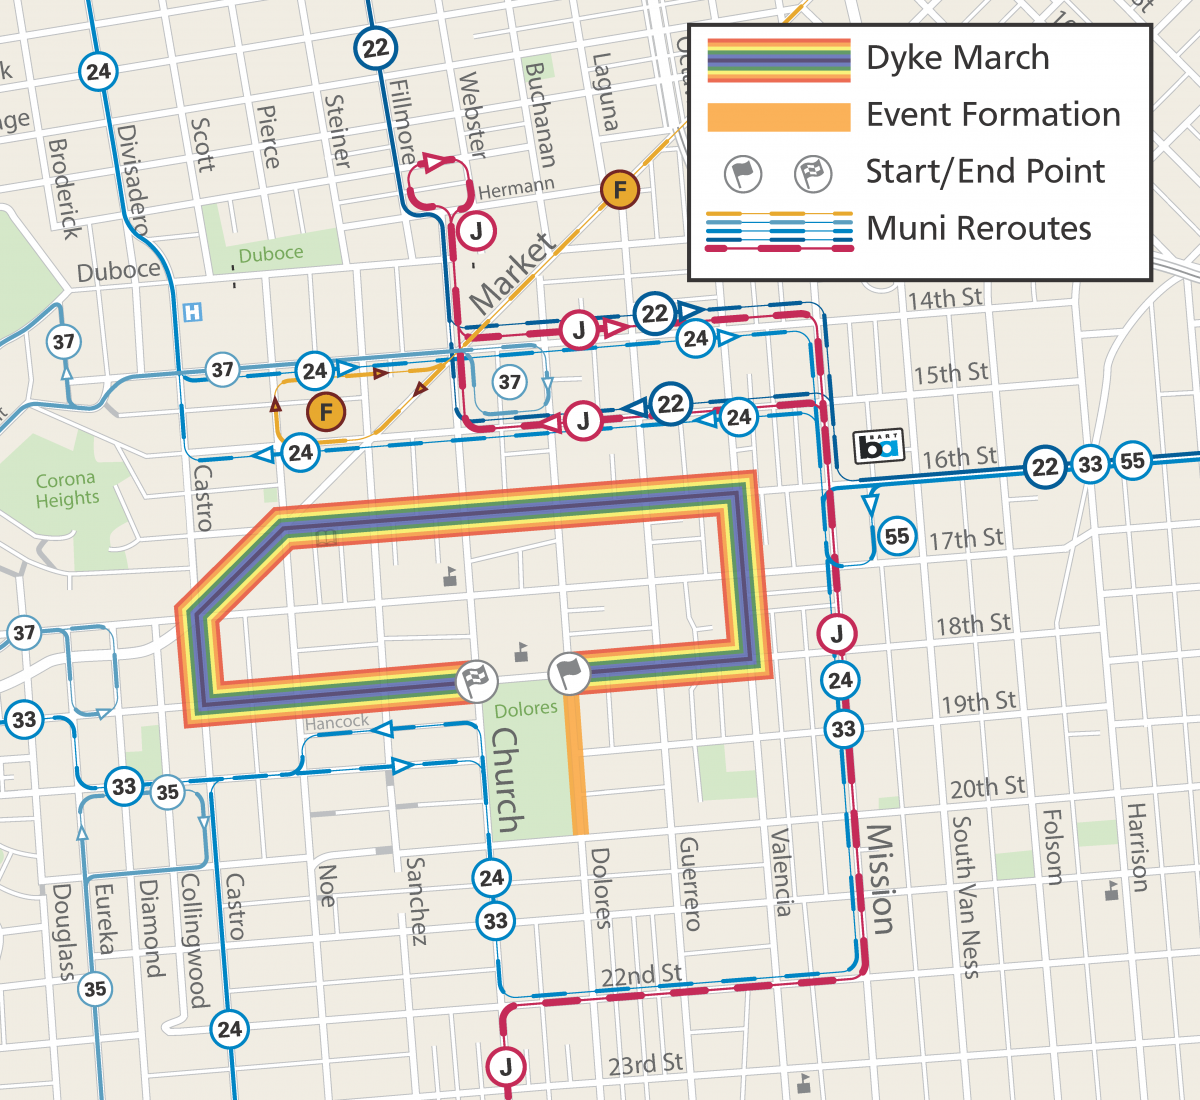 Map of March Route and Muni Reroutes for Dyke March 2019